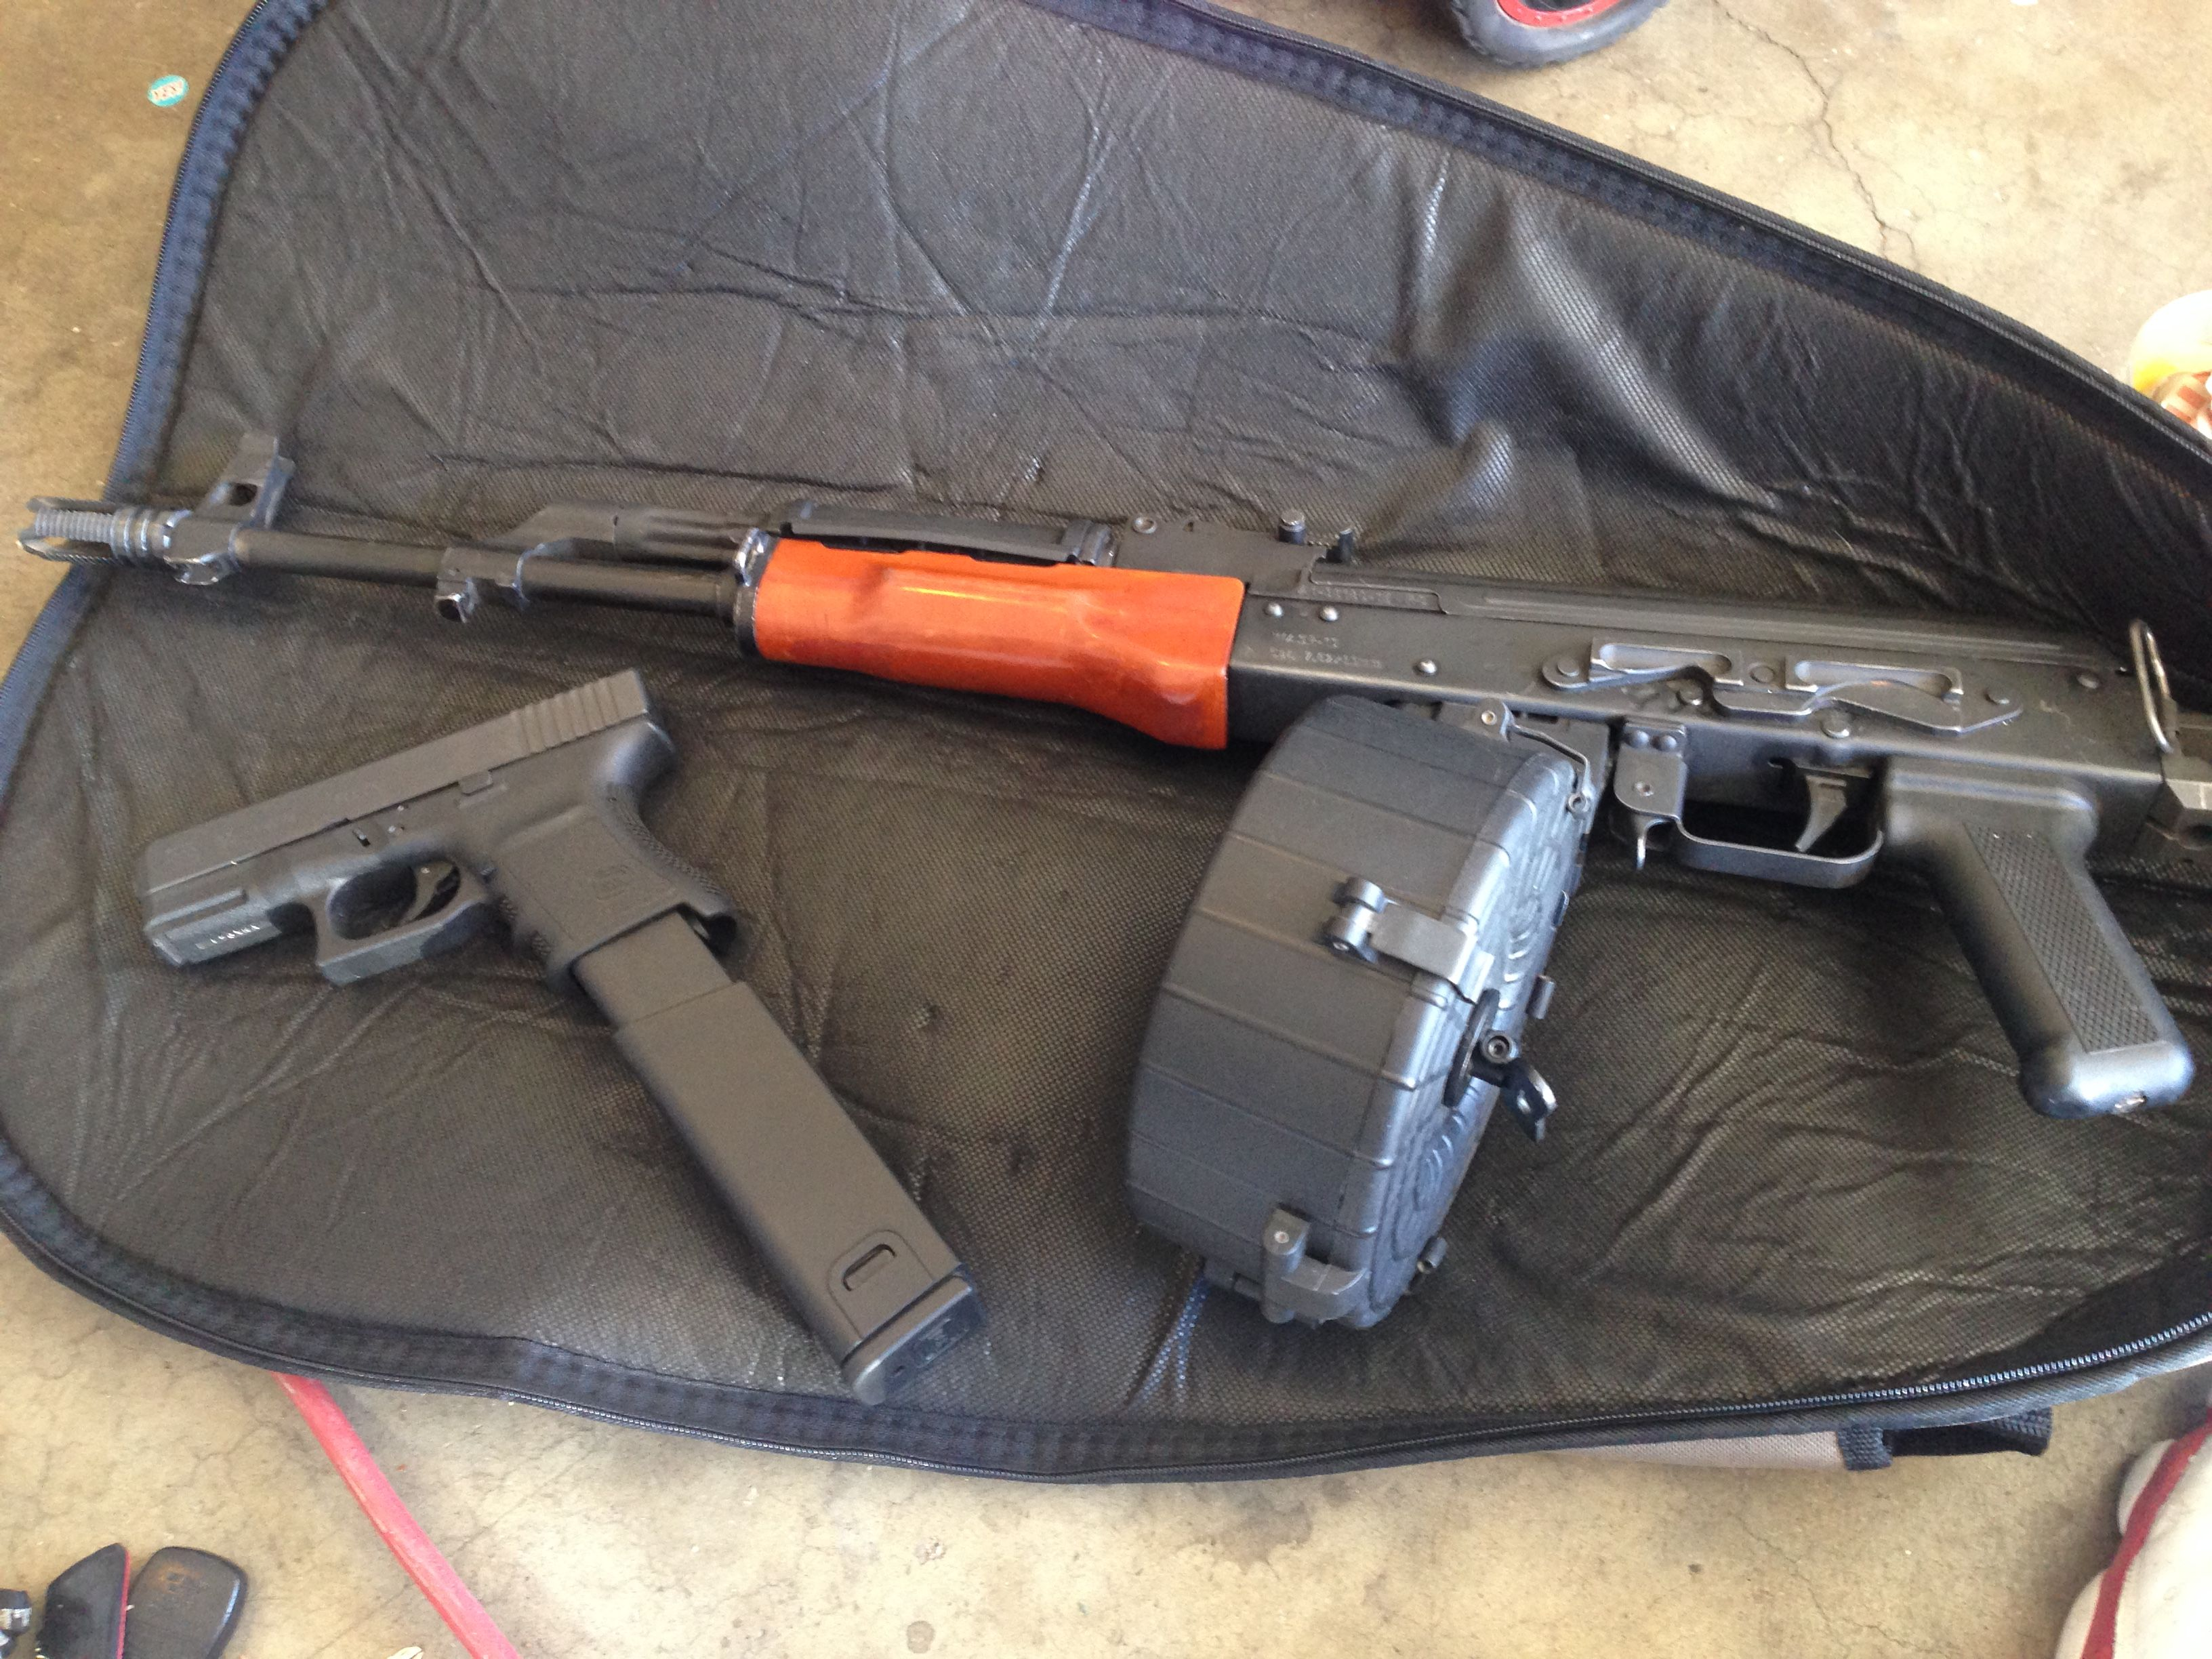 my chopper with 75 round drum and glock 45 with 30 round extended